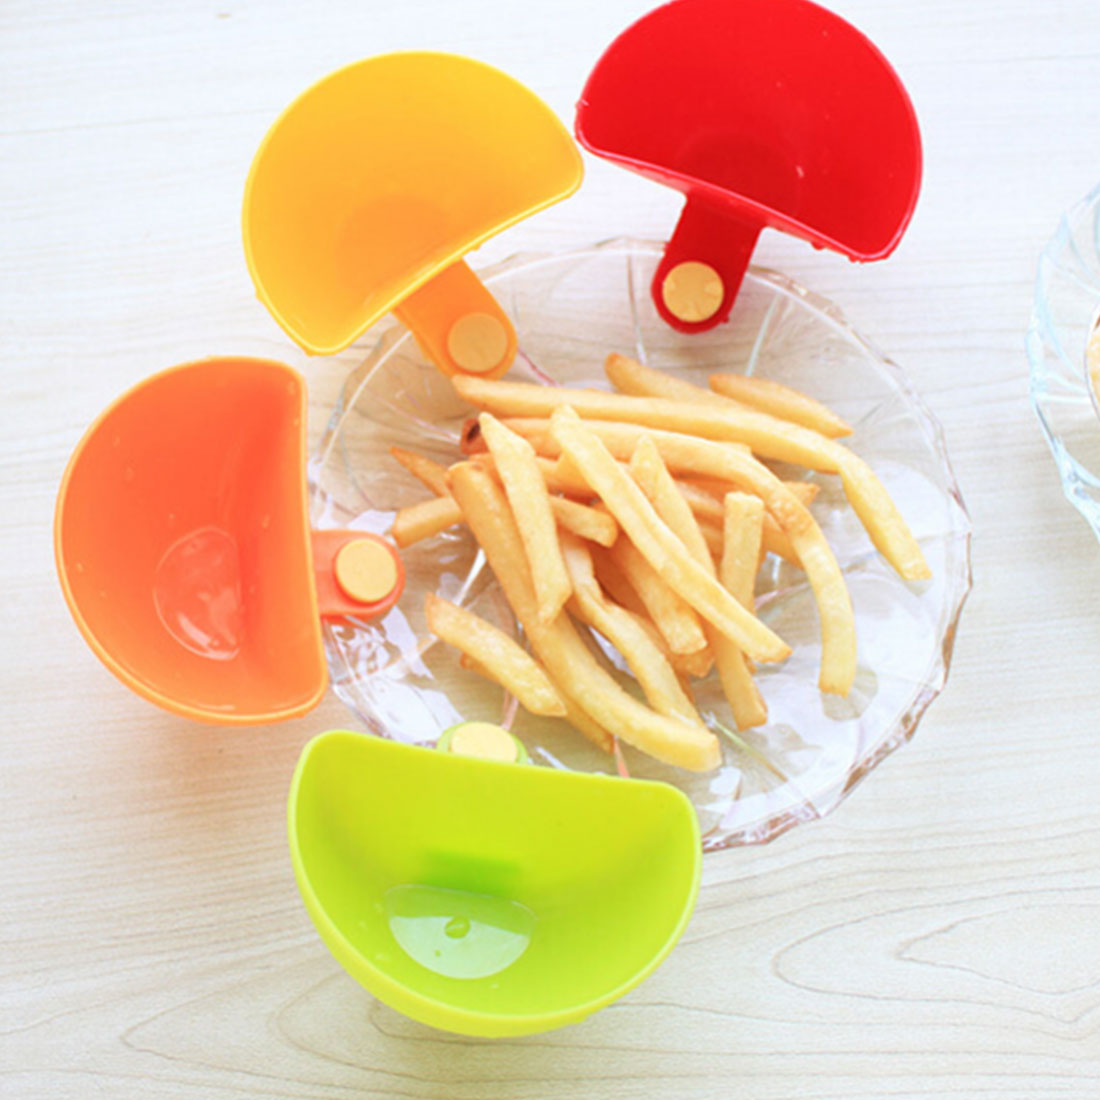 1pc Assorted Salad Sauce Dip Saucers Ketchup Dip Clip Cup Bowl for Tomato Salt Vinegar Sugar Flavor Splice Kitchen Accessories image